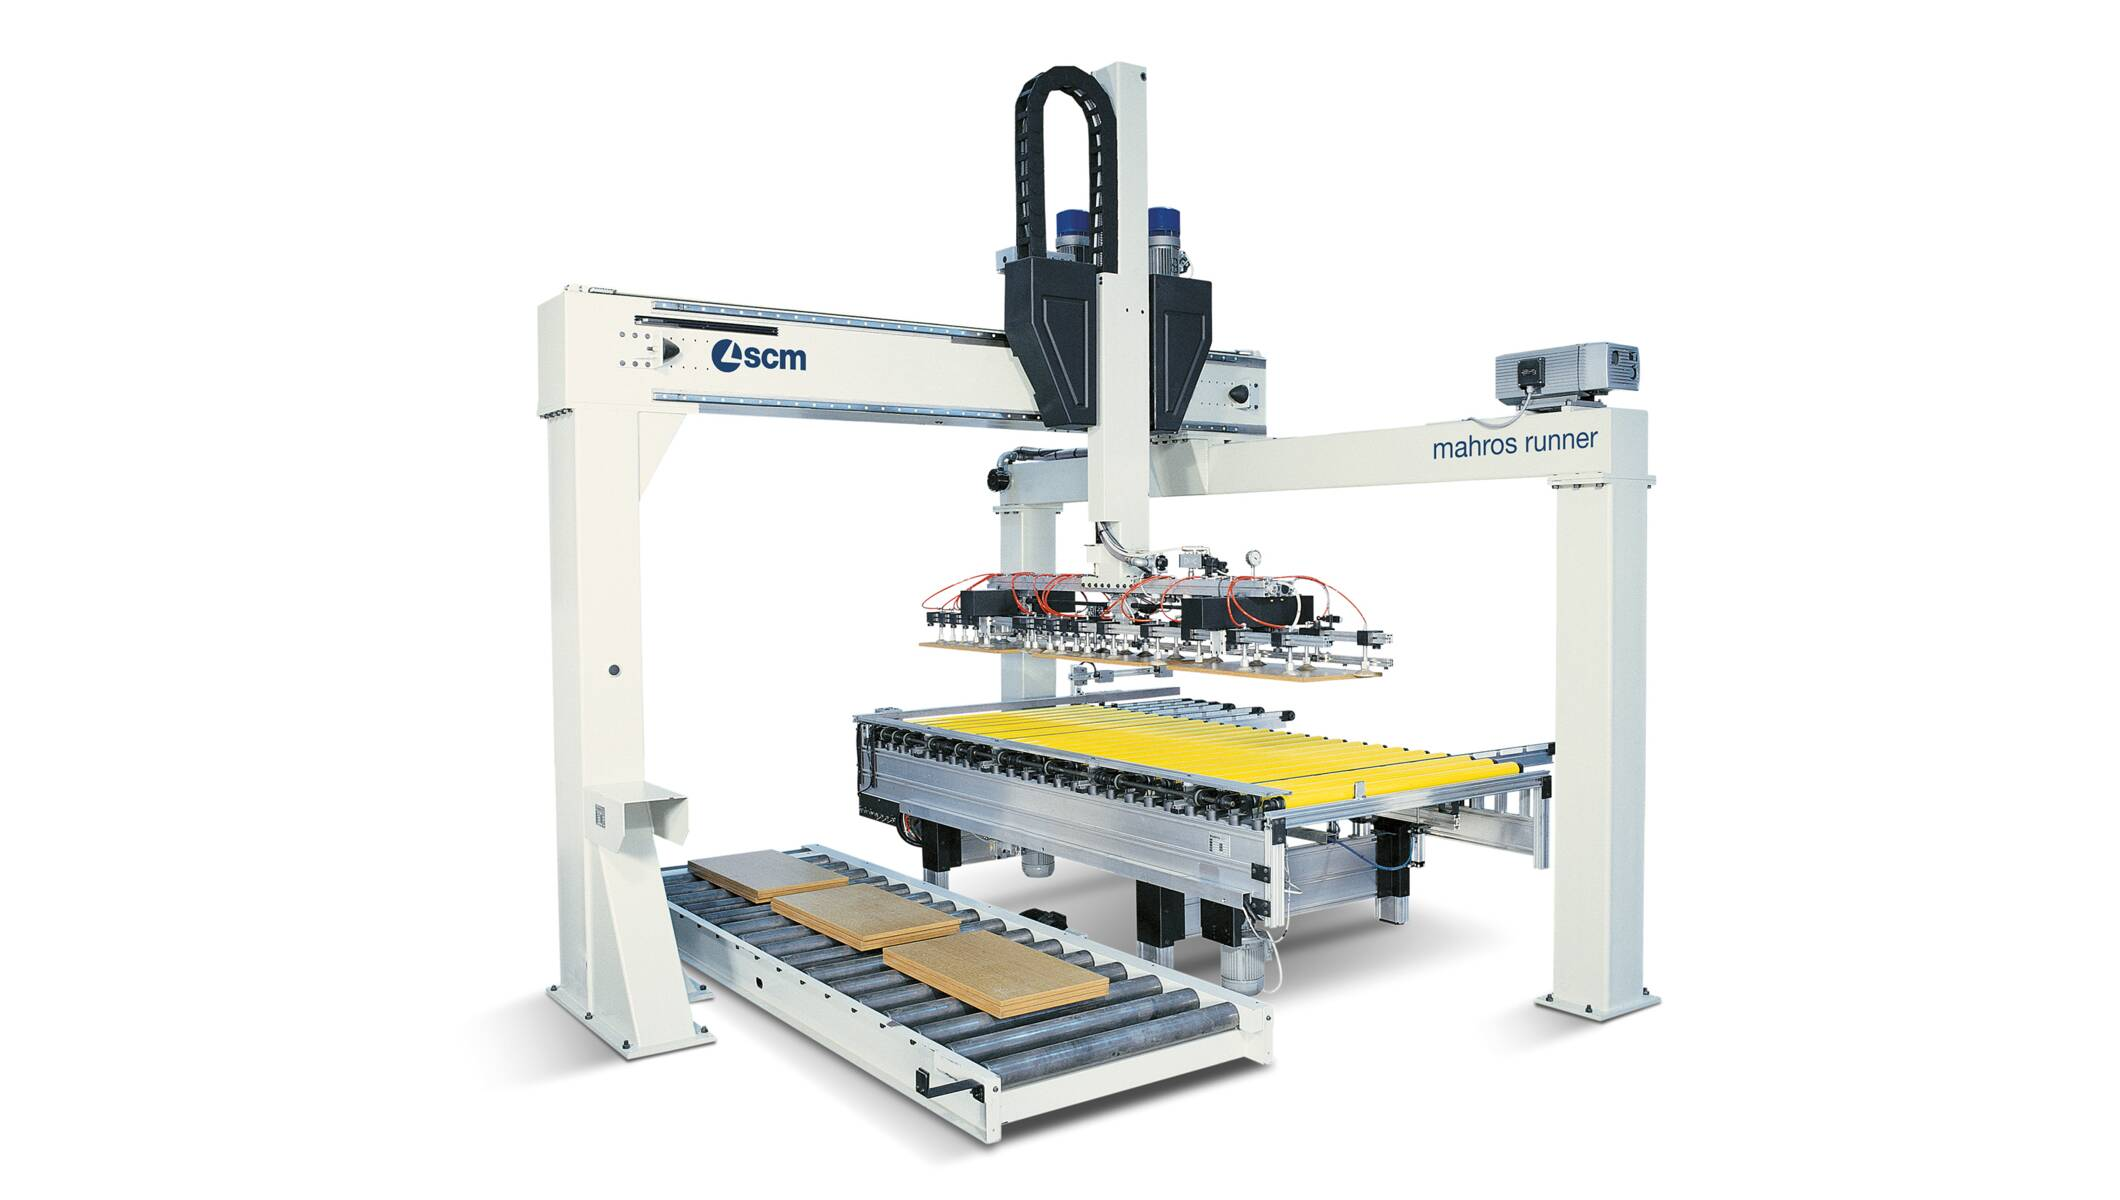 Automation systems - Machines for automation systems - mahros runner